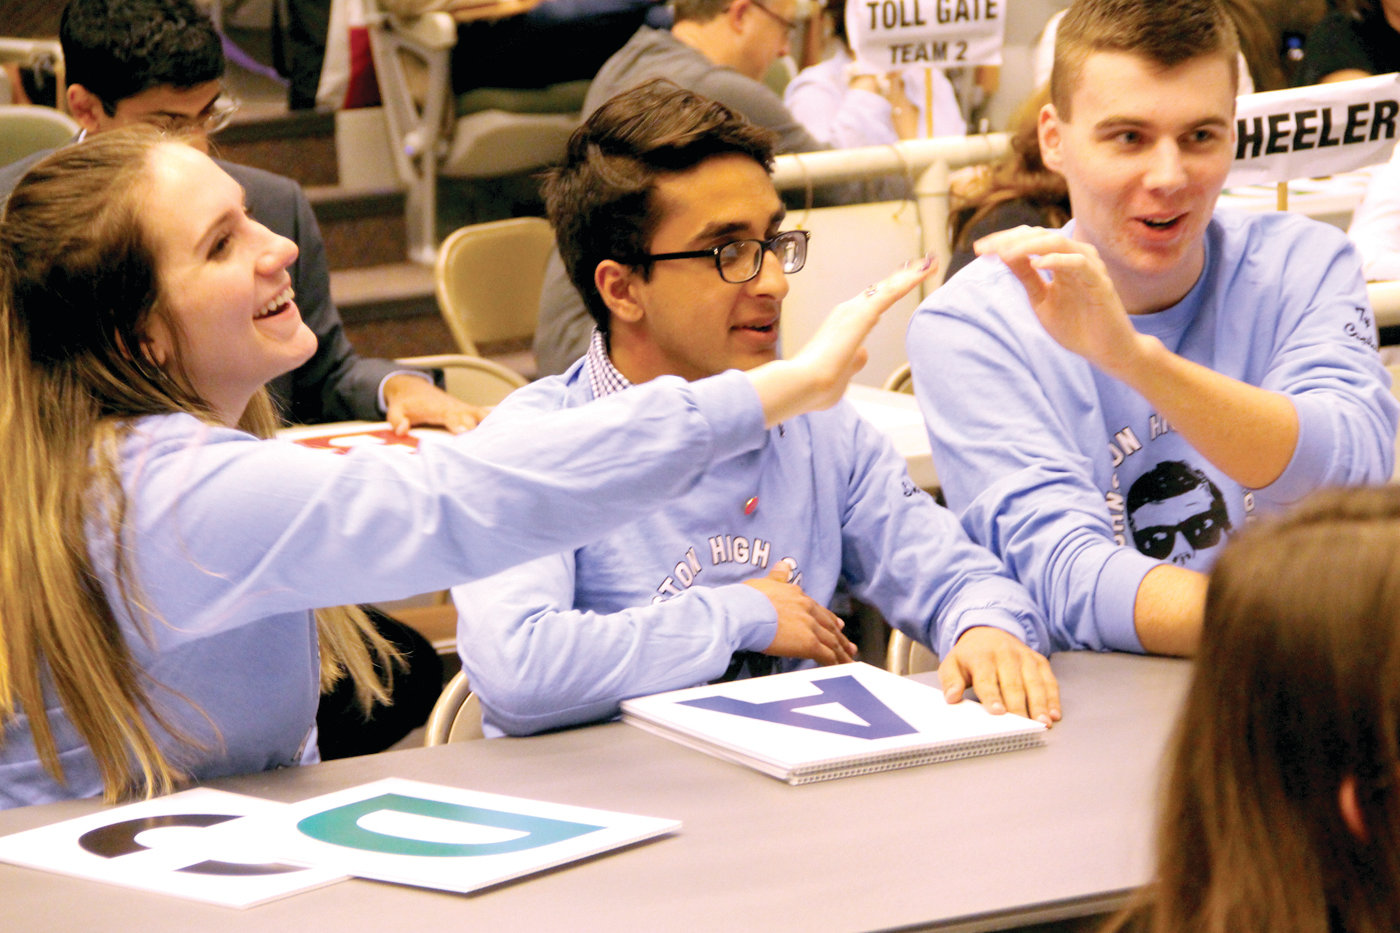 THEY KNOW THE ANSWER: From left to right, Dana Smyth, Shaheer Jamil and Captain Tyler Roche led their team to a second-place finish in the Super Quiz competition this past weekend.